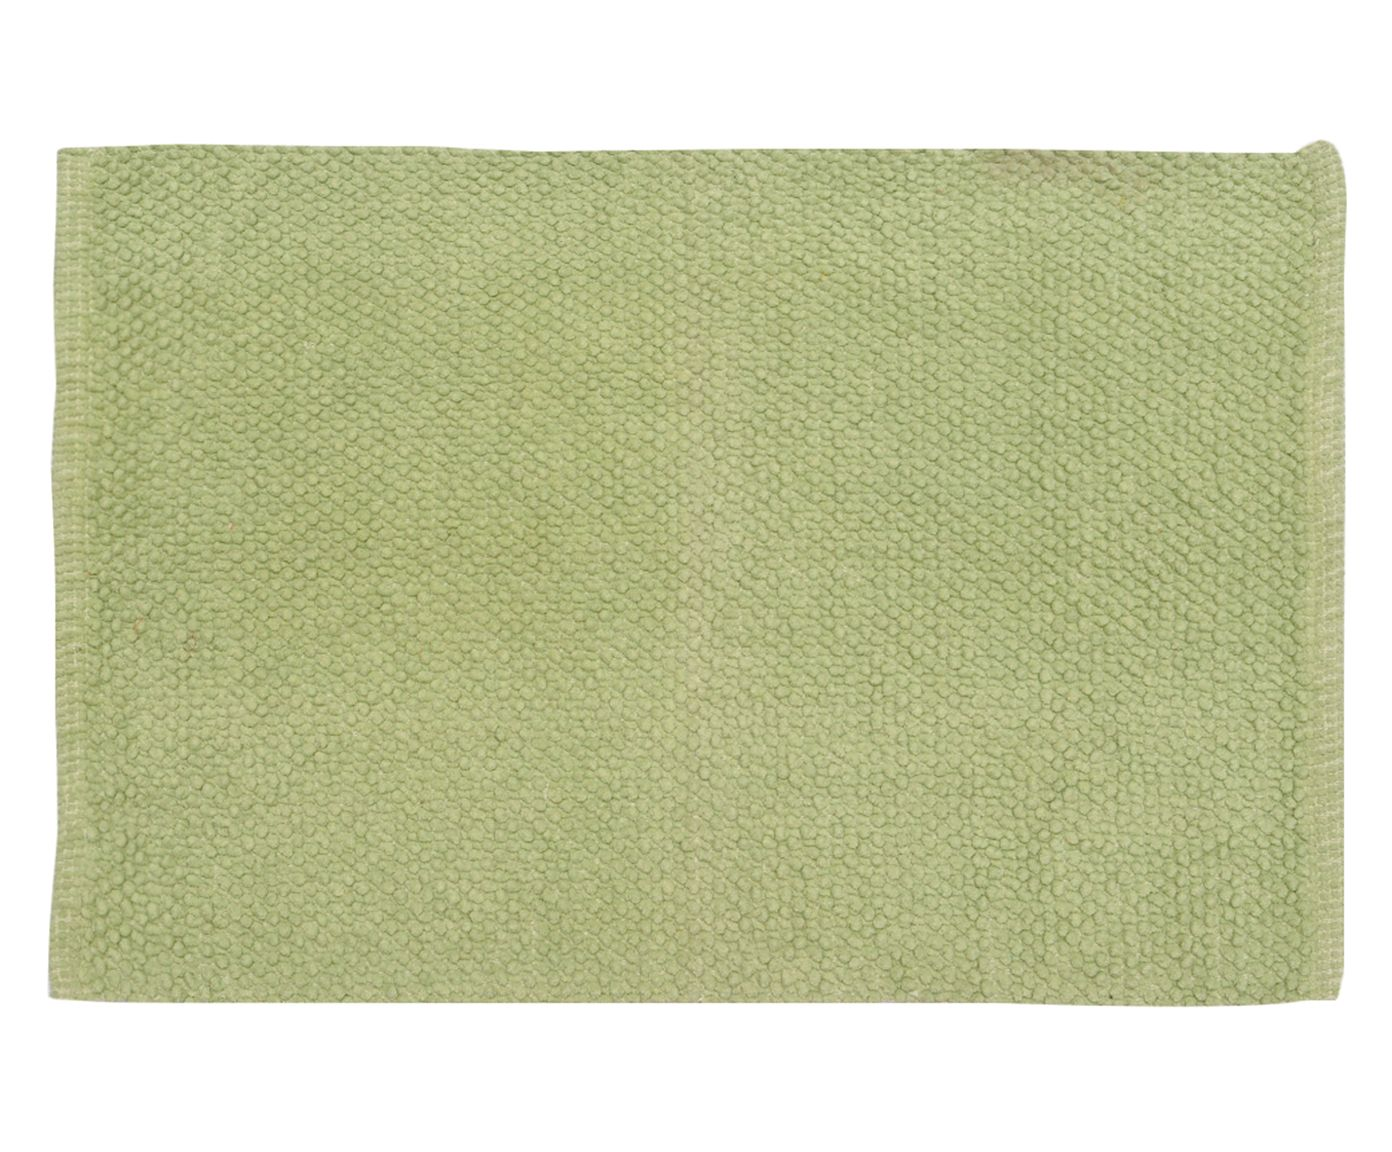 Tapete Indiano Saraswati Verde - 60x90cm | Westwing.com.br